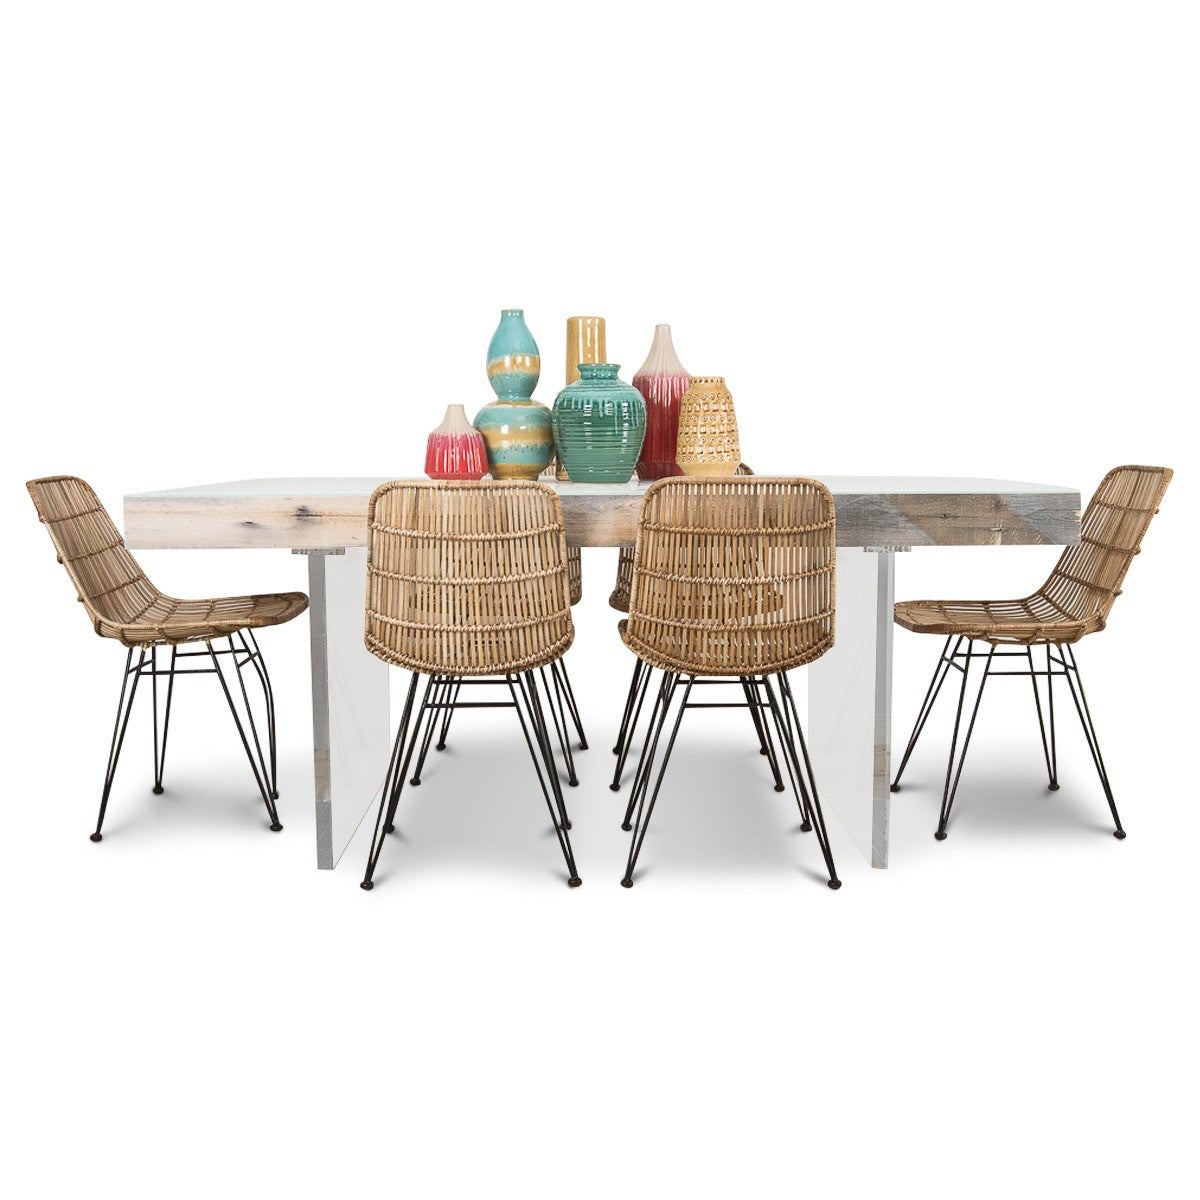 Cody Dining Table in Grey Recycled Wood - ModShop1.com